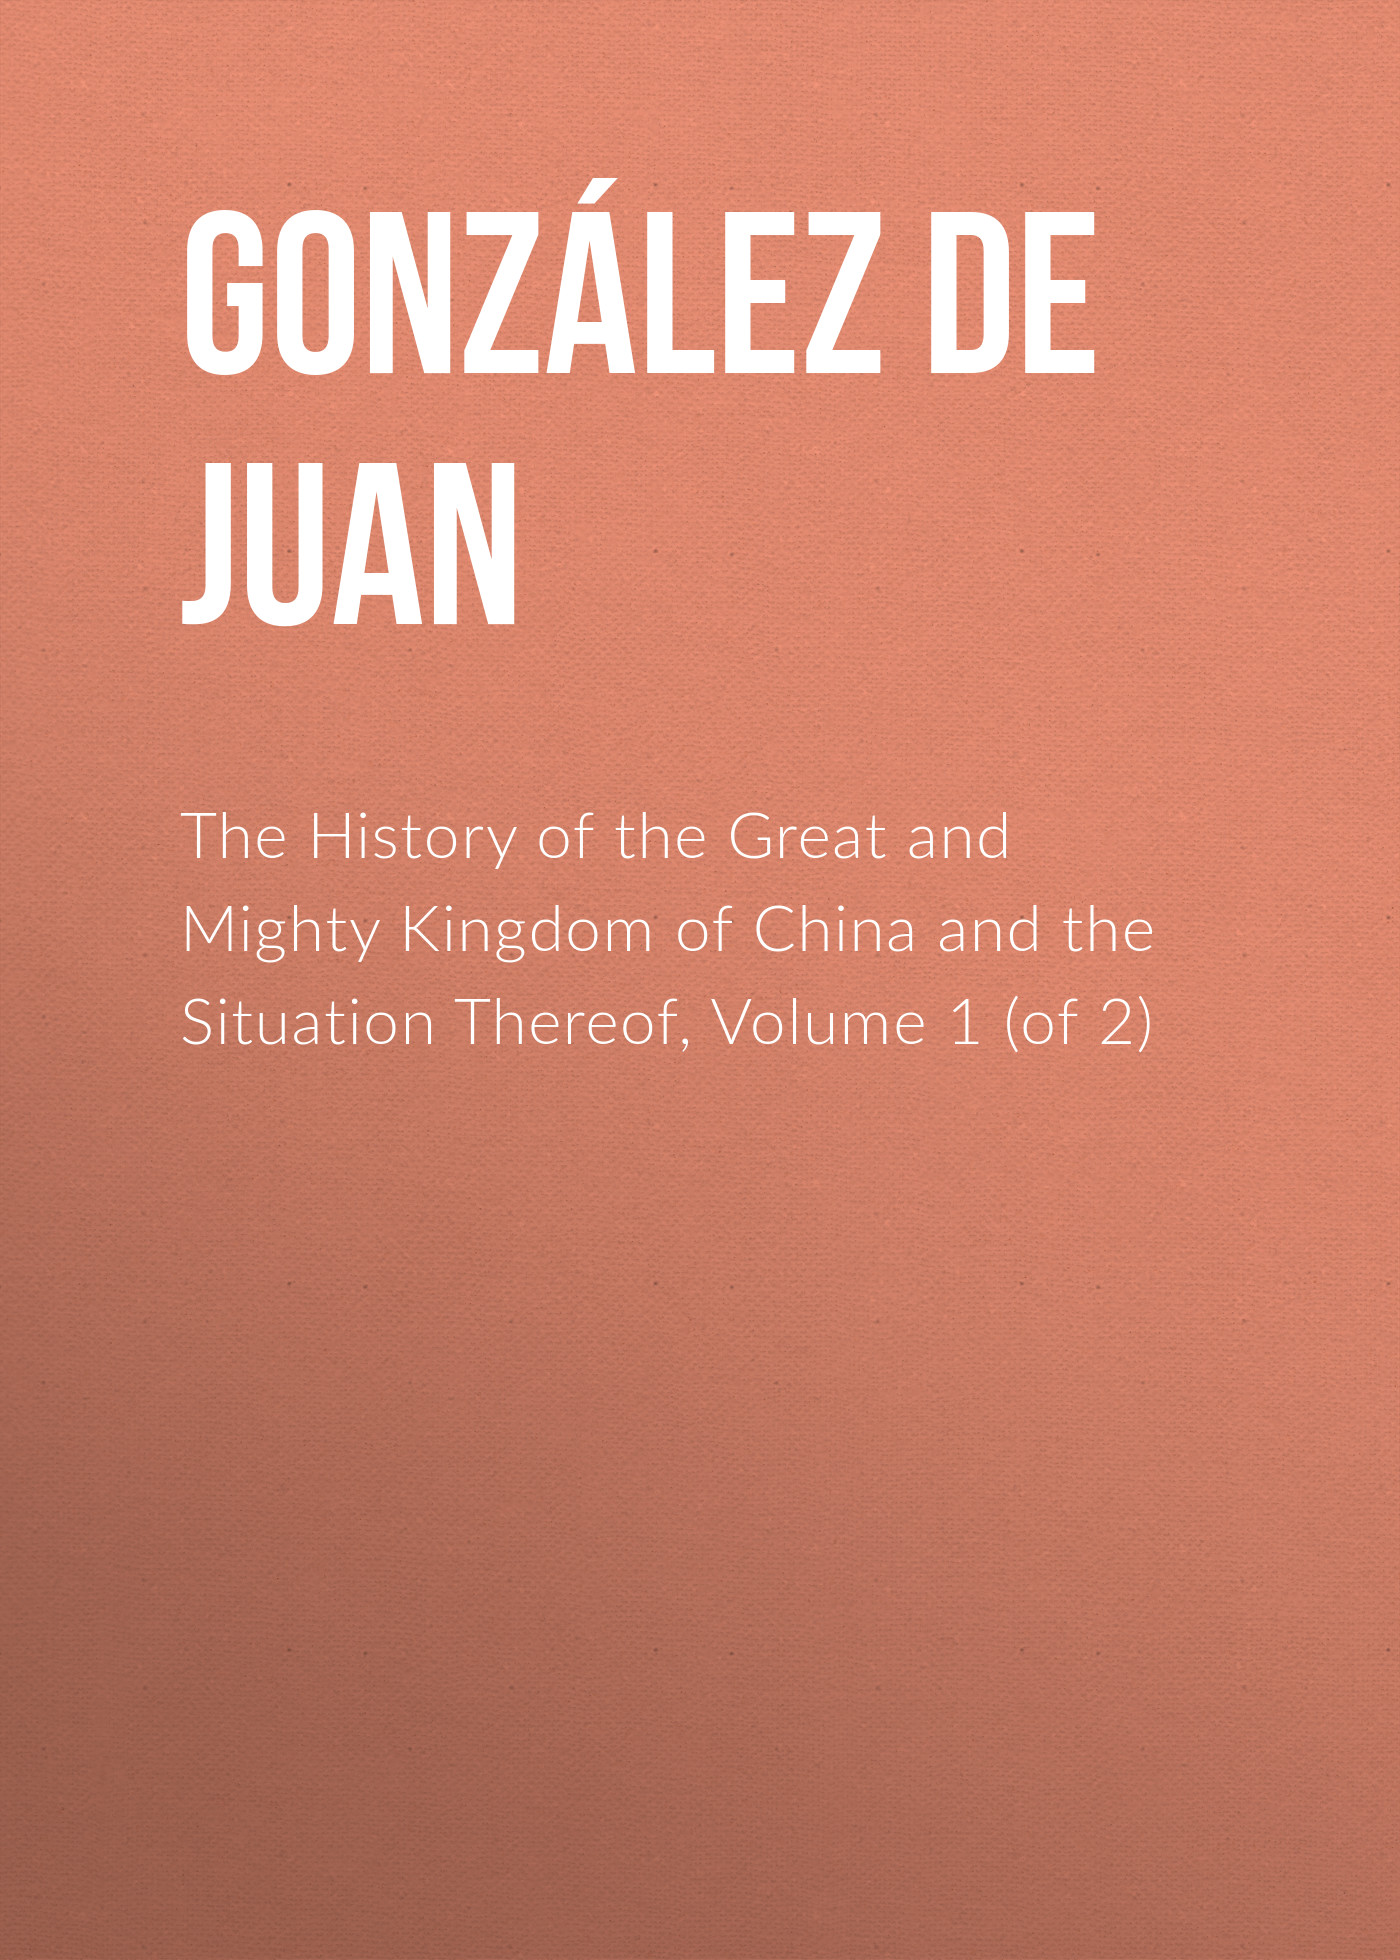 Фото - González de Mendoza Juan The History of the Great and Mighty Kingdom of China and the Situation Thereof, Volume 1 (of 2) m guizot history of richard cromwell and the restoration of charles ii volume 2